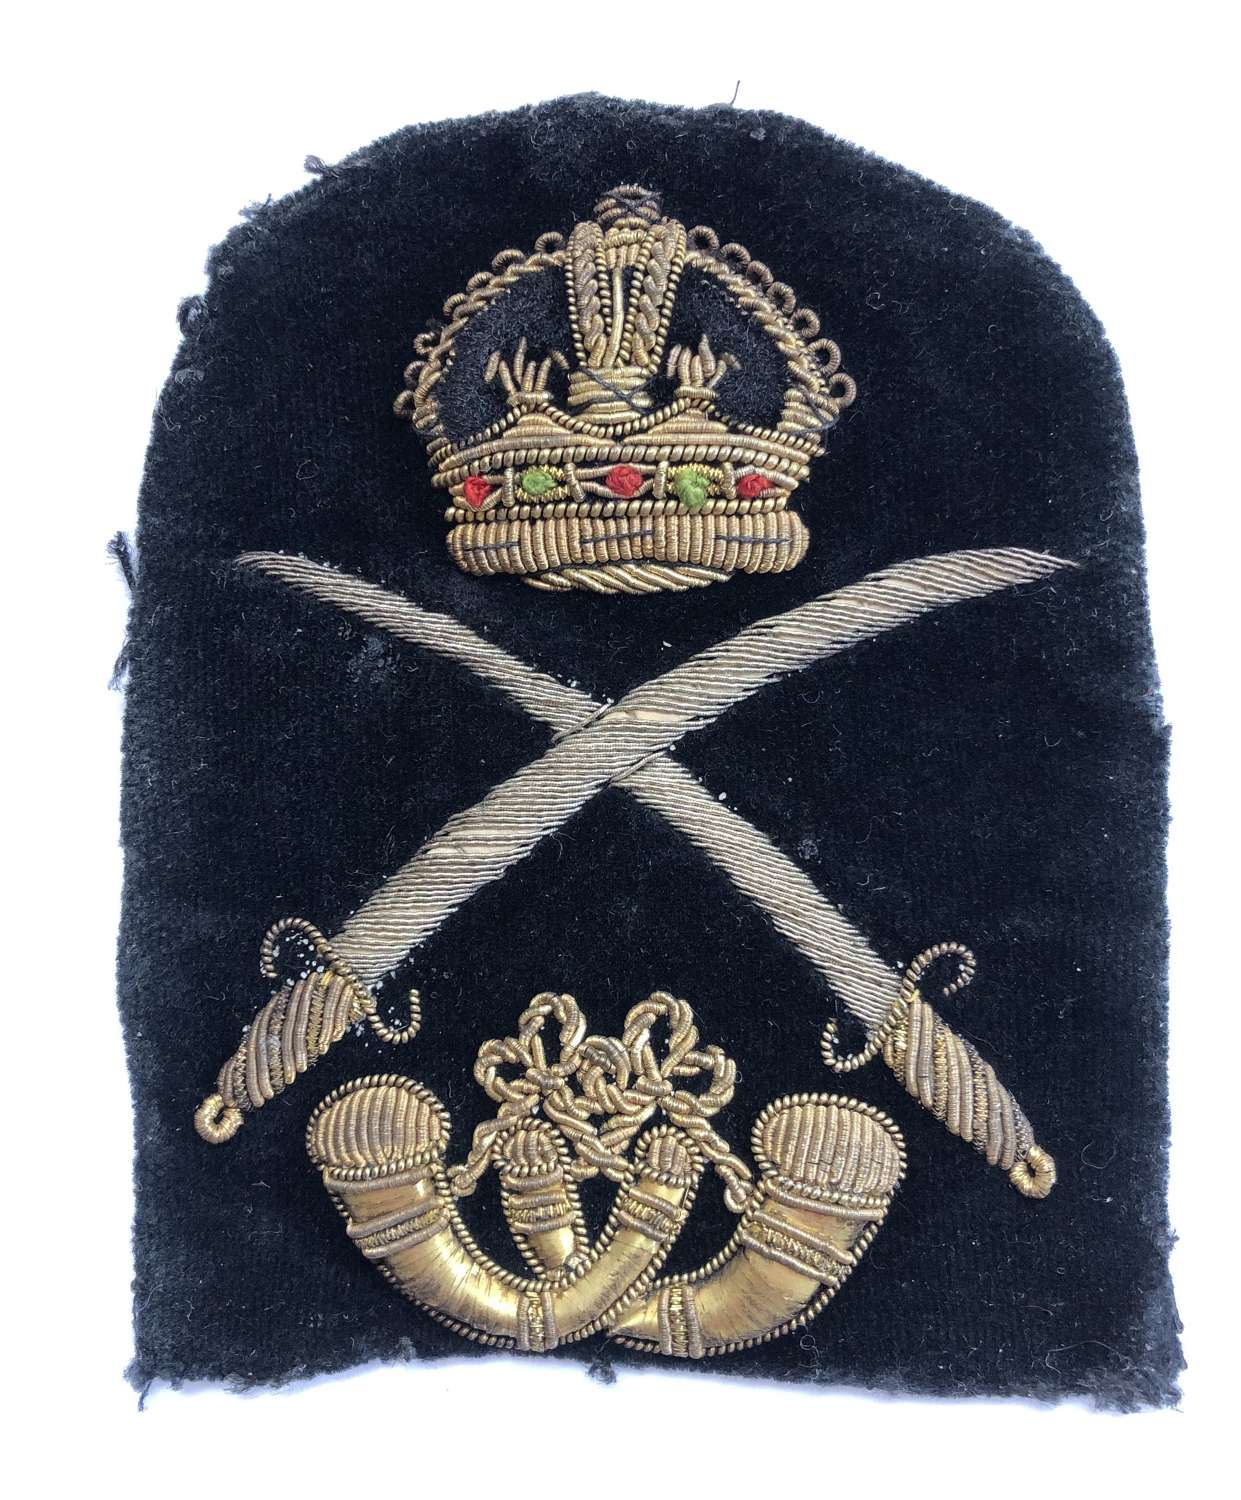 Colour Sergeant Rife Regiment bullion rank badge circa 1901-1915